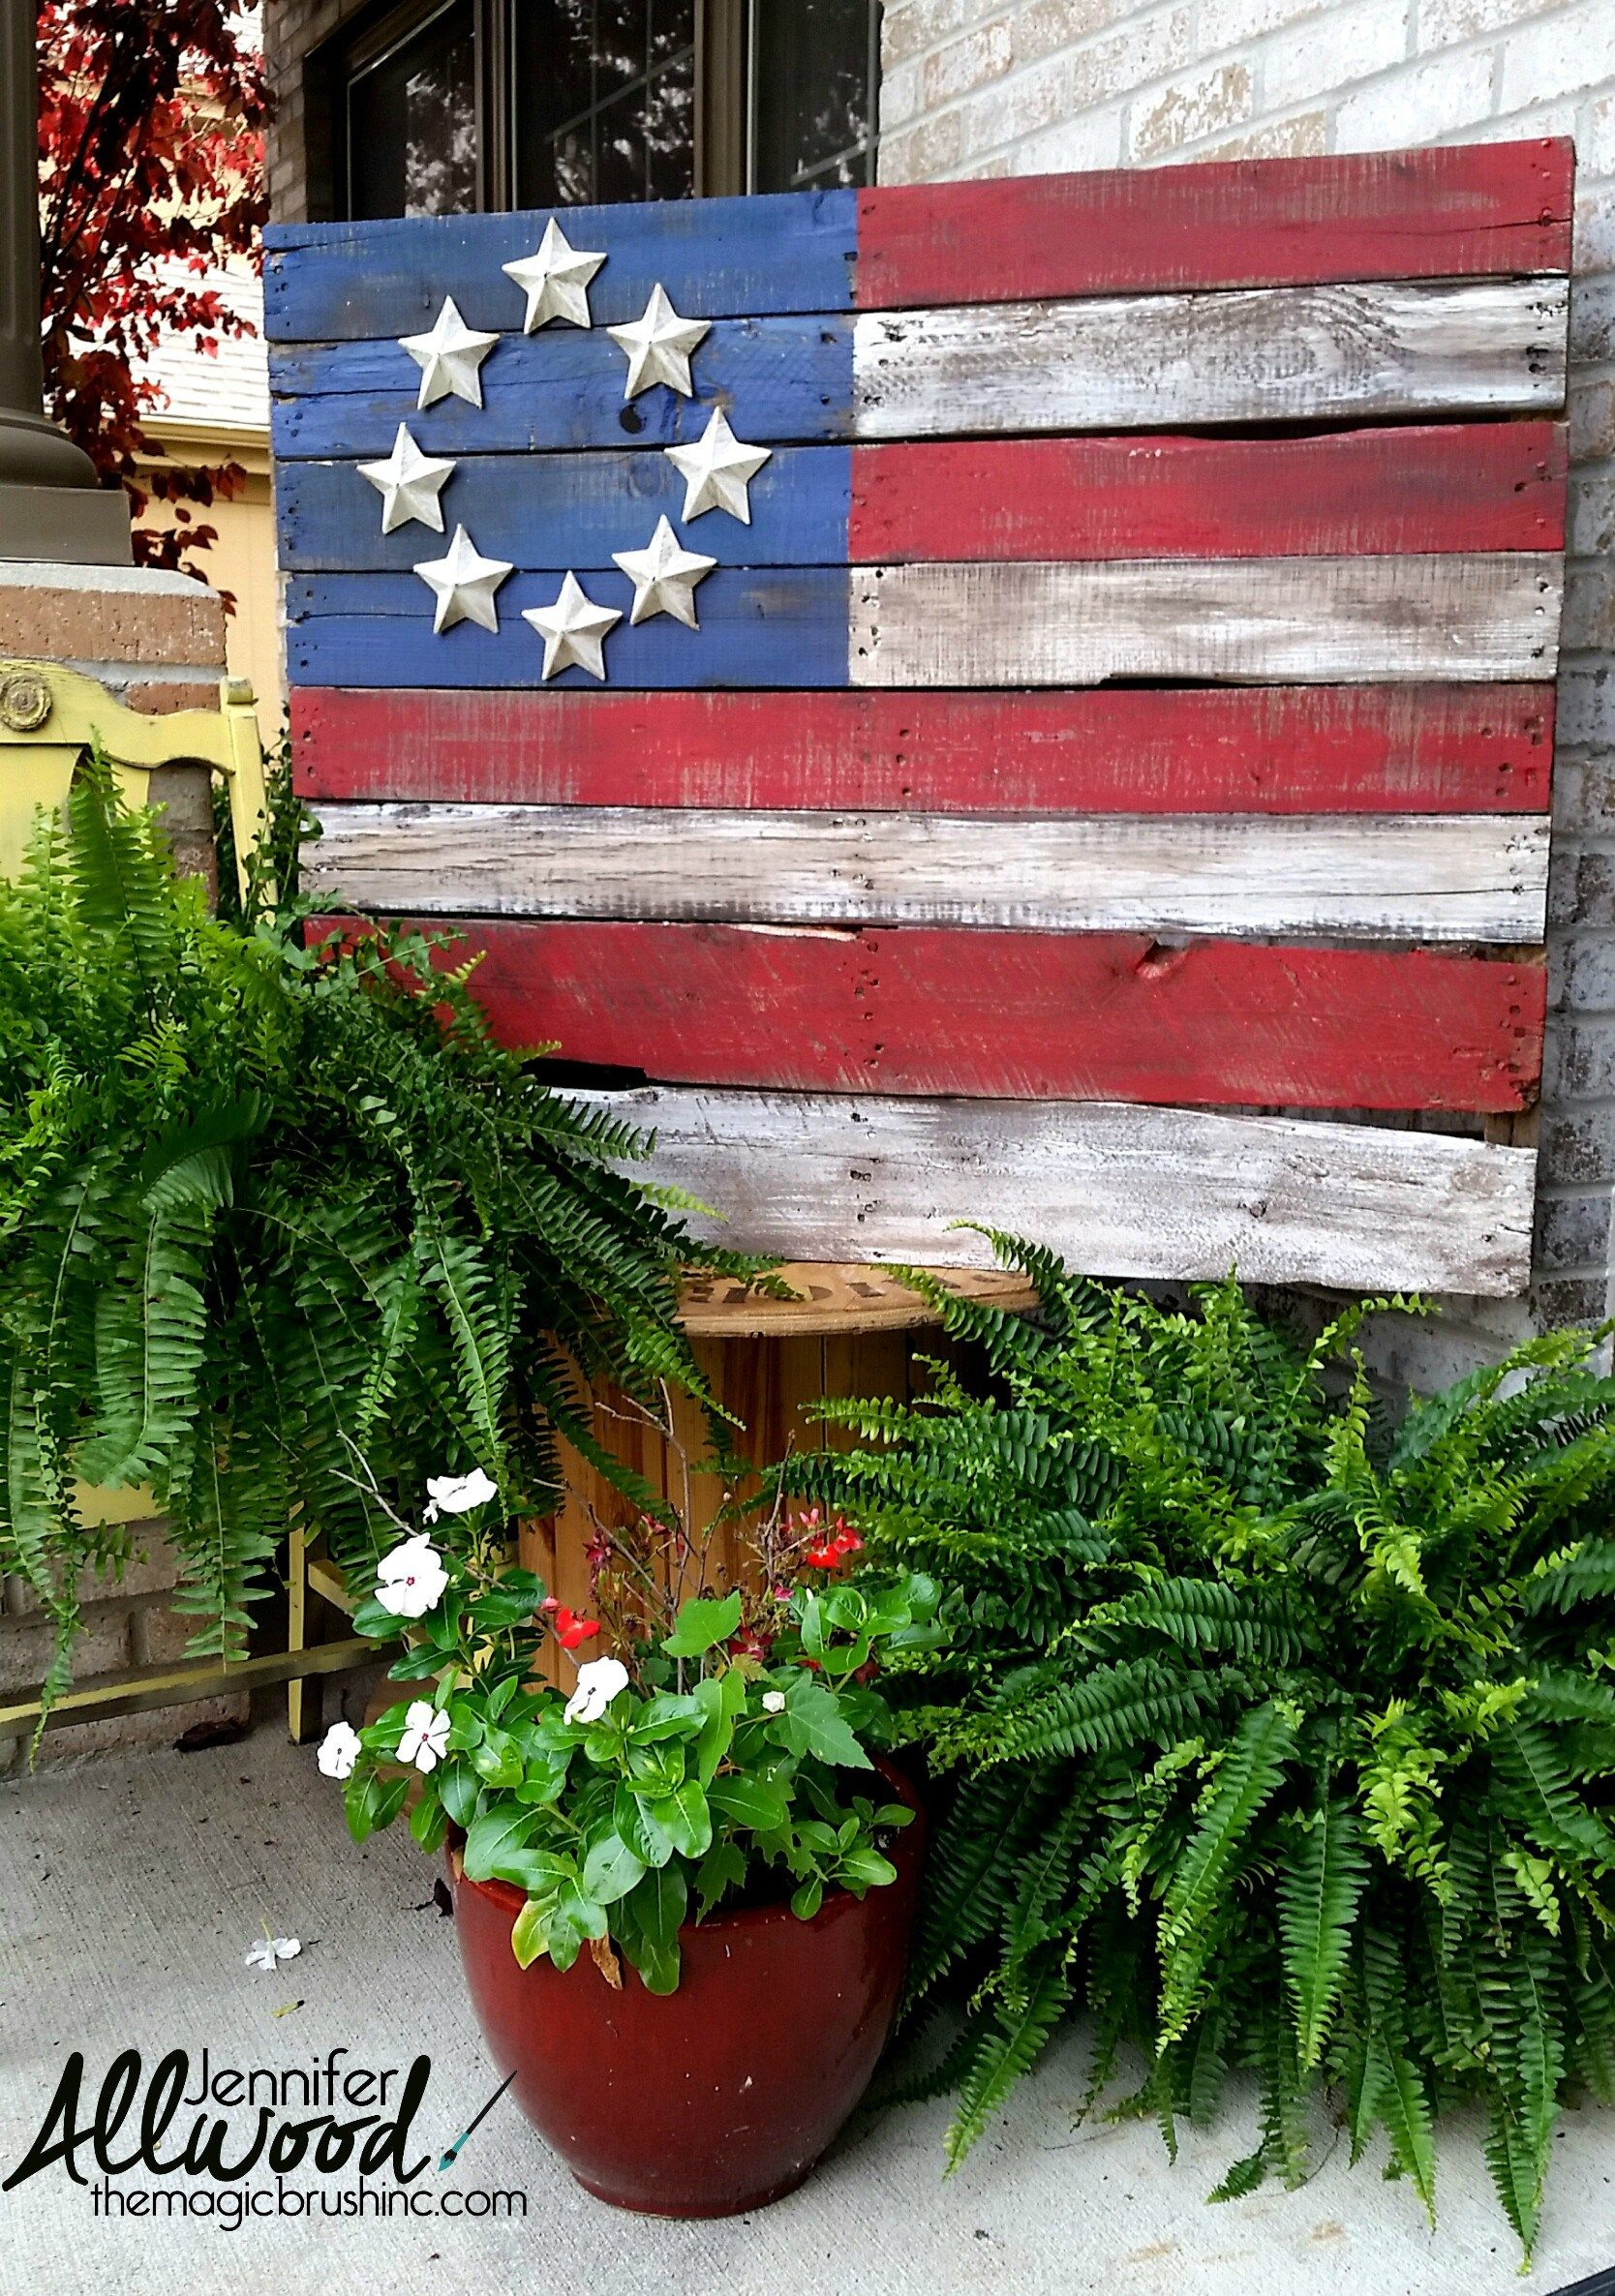 30 Decorations For 4th Of July 2018 Patriotic Fourth Of July